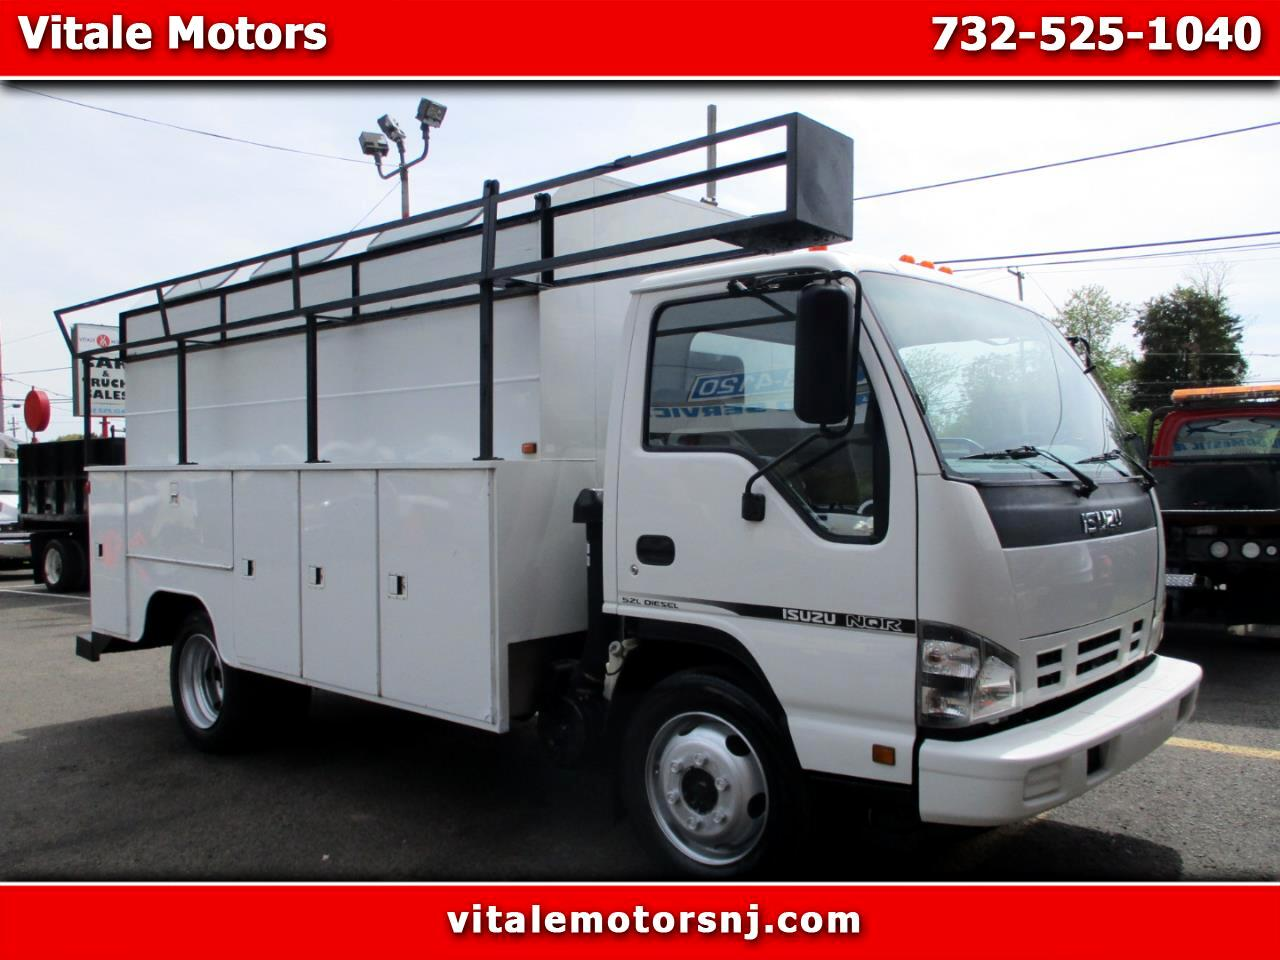 2007 Isuzu NQR ENCLOSED UTILITY BODY DRW DIESEL 83K